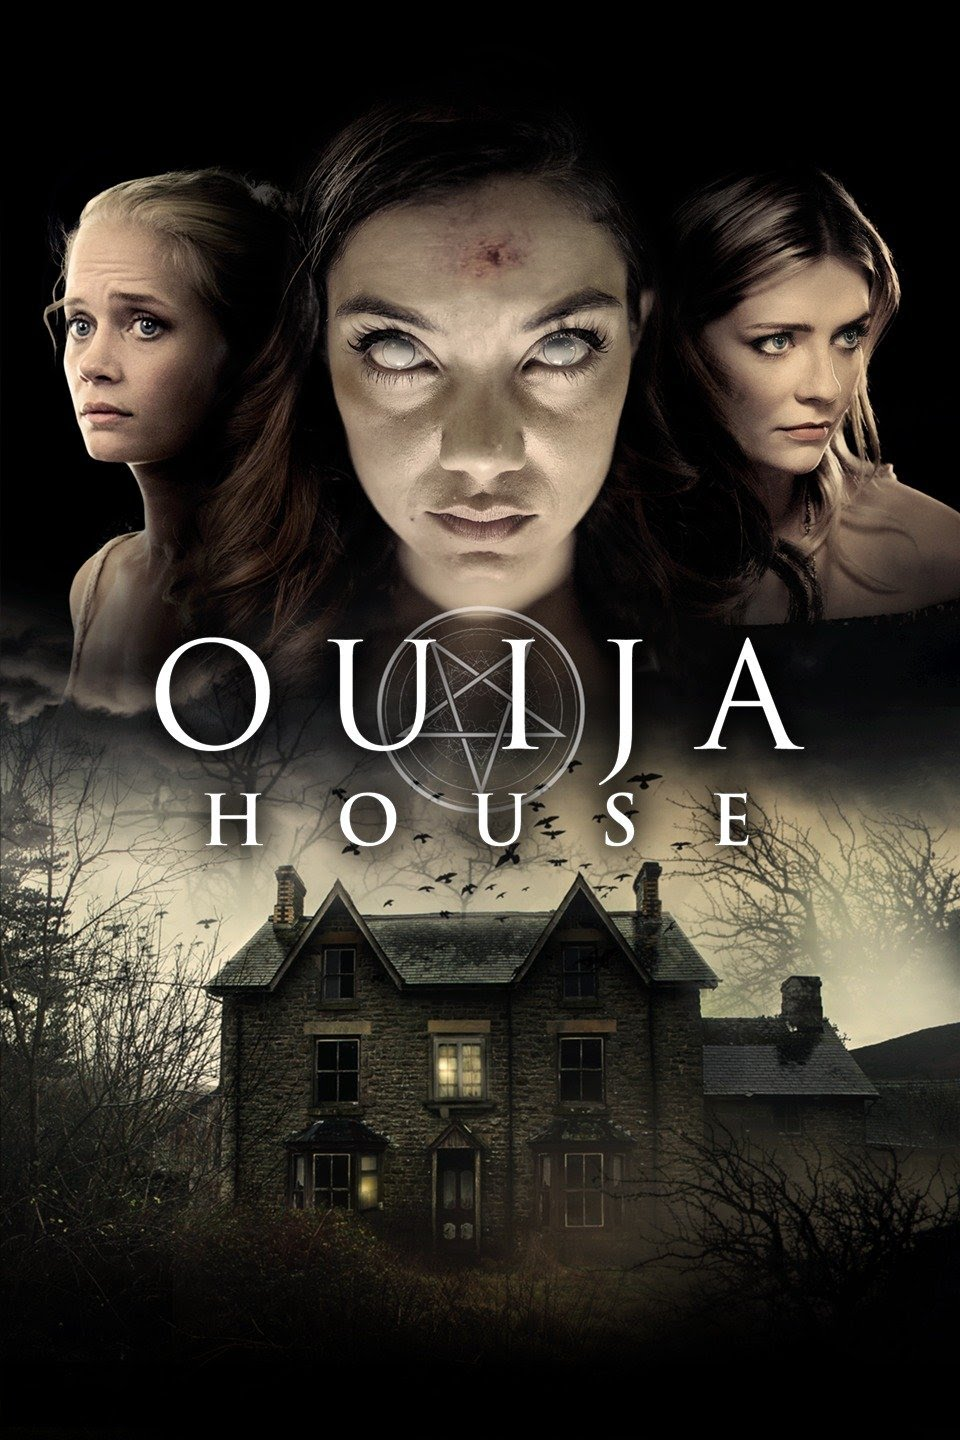 Ouija House 2018 Dual Audio Hindi 350MB HDRip ESub Download